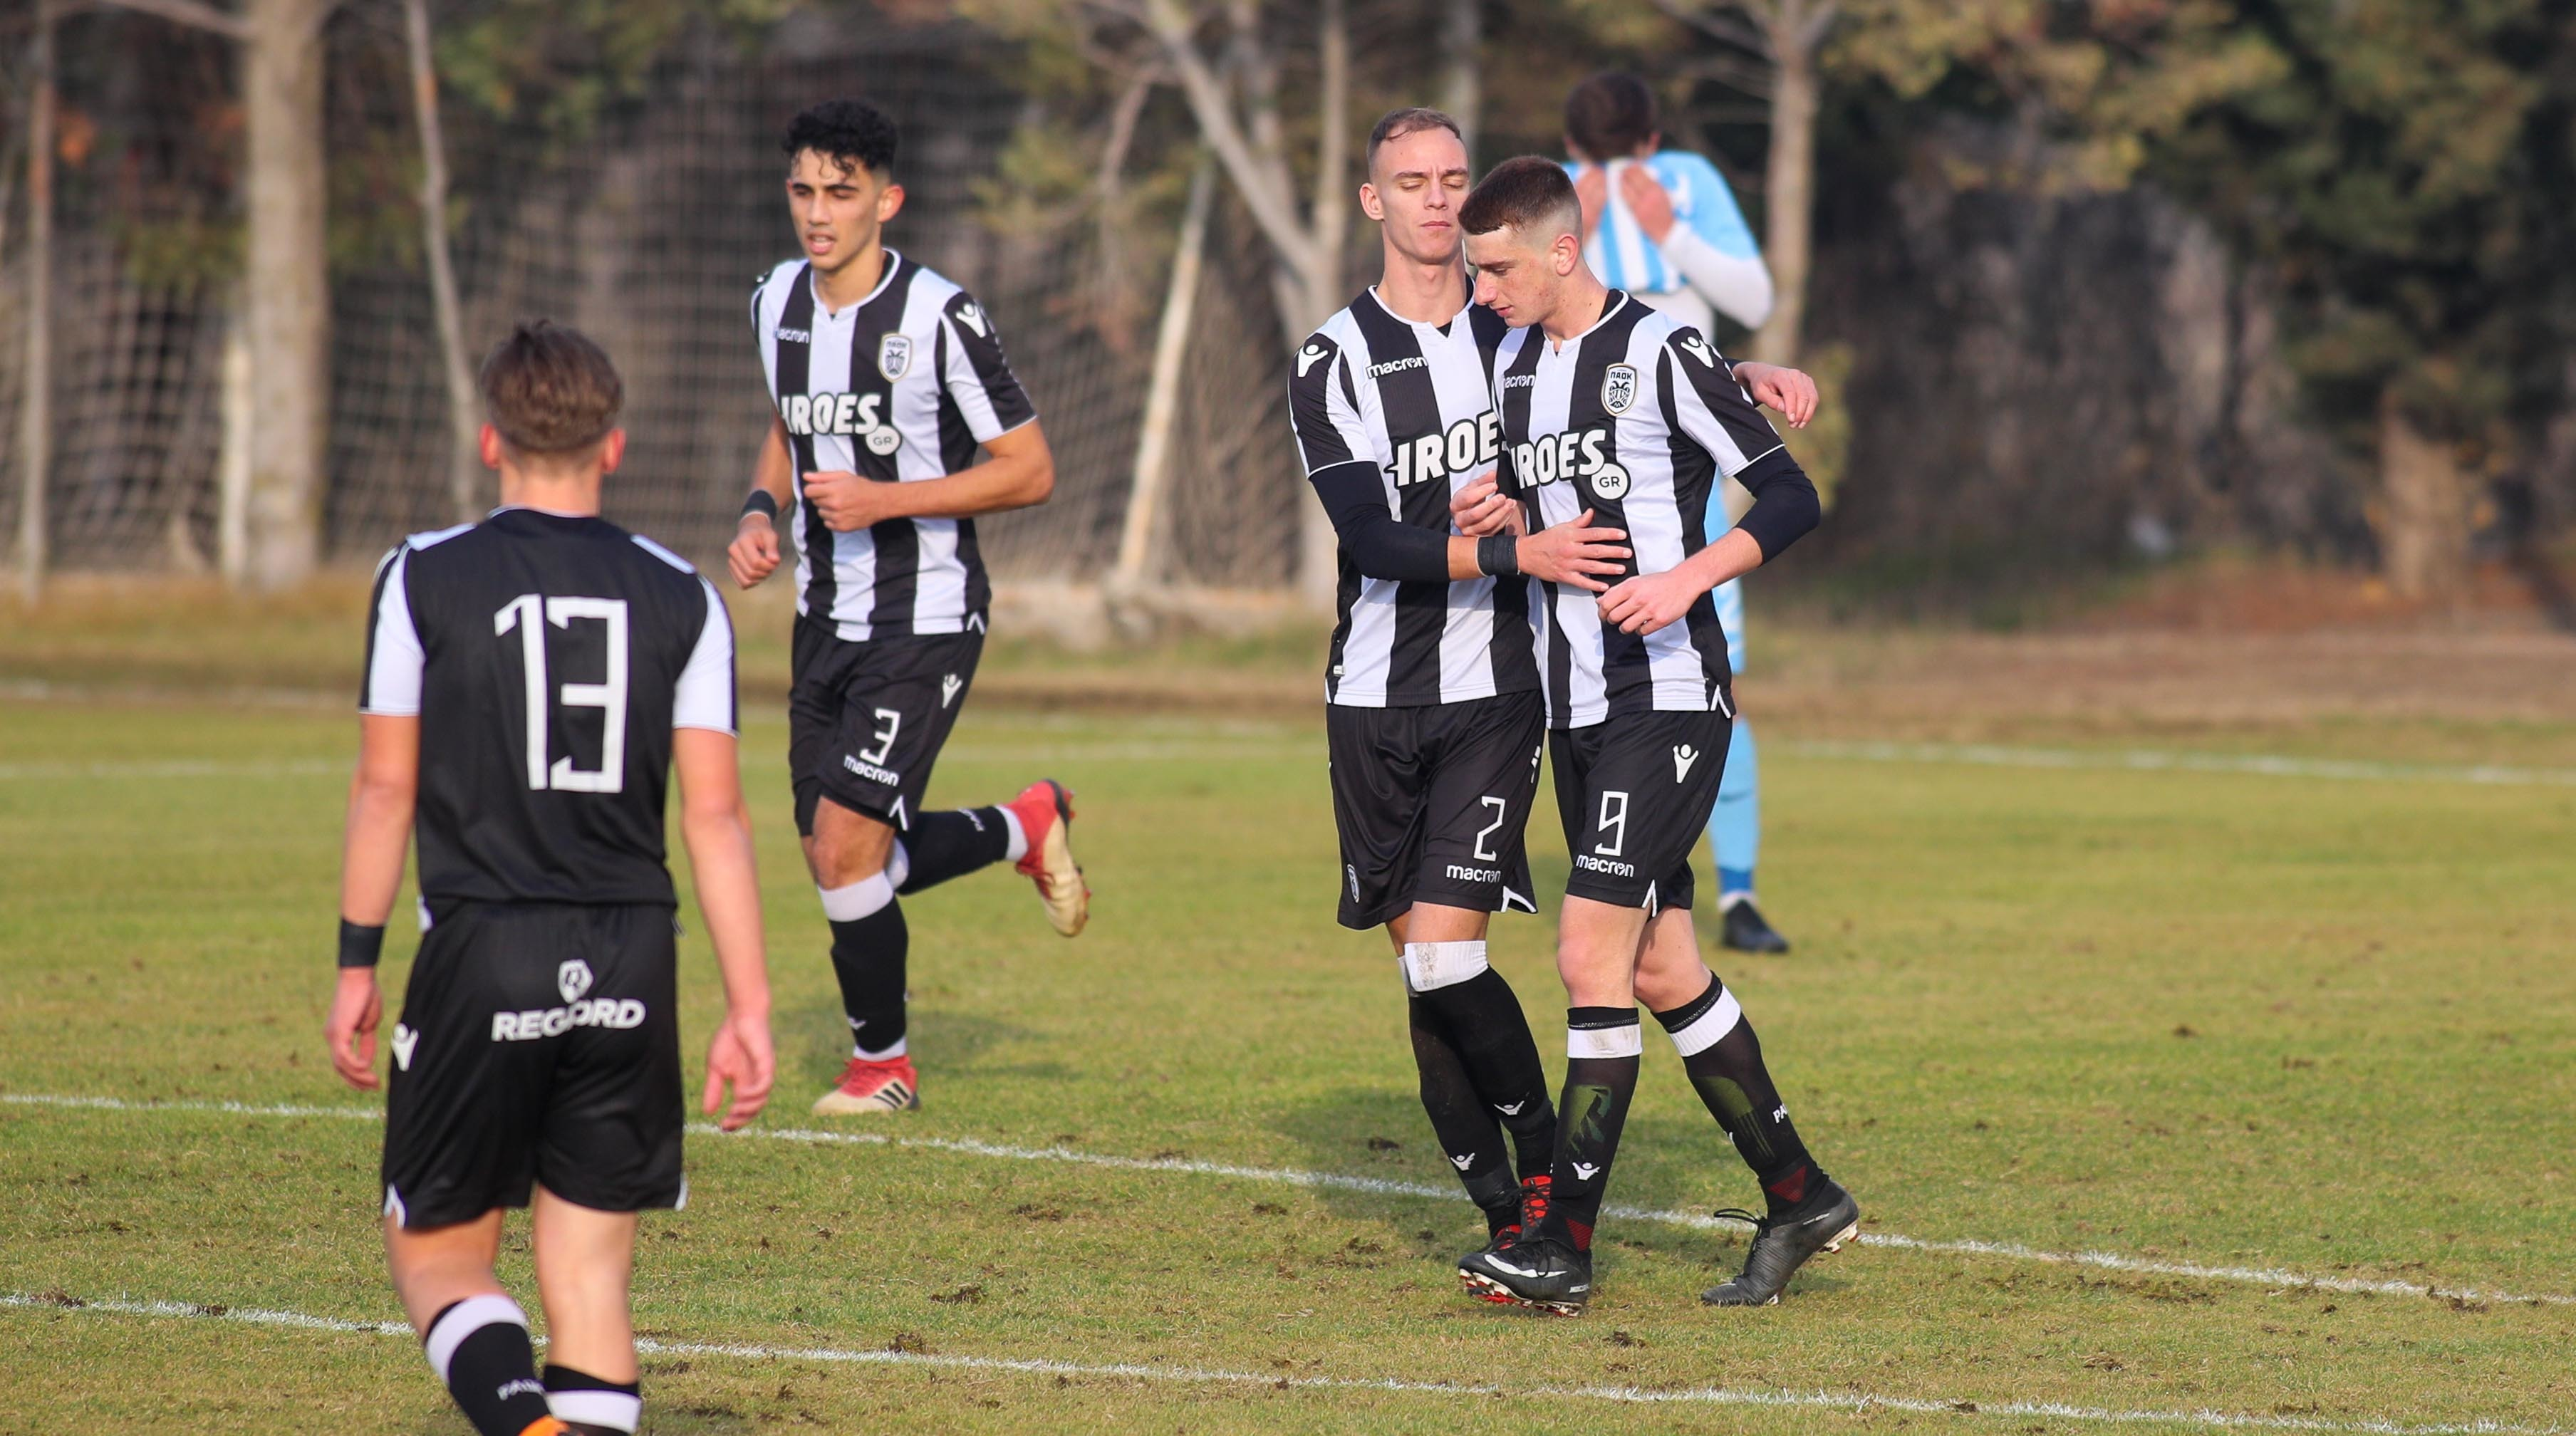 PAOK U19 – PAS Giannina U19: Highlights